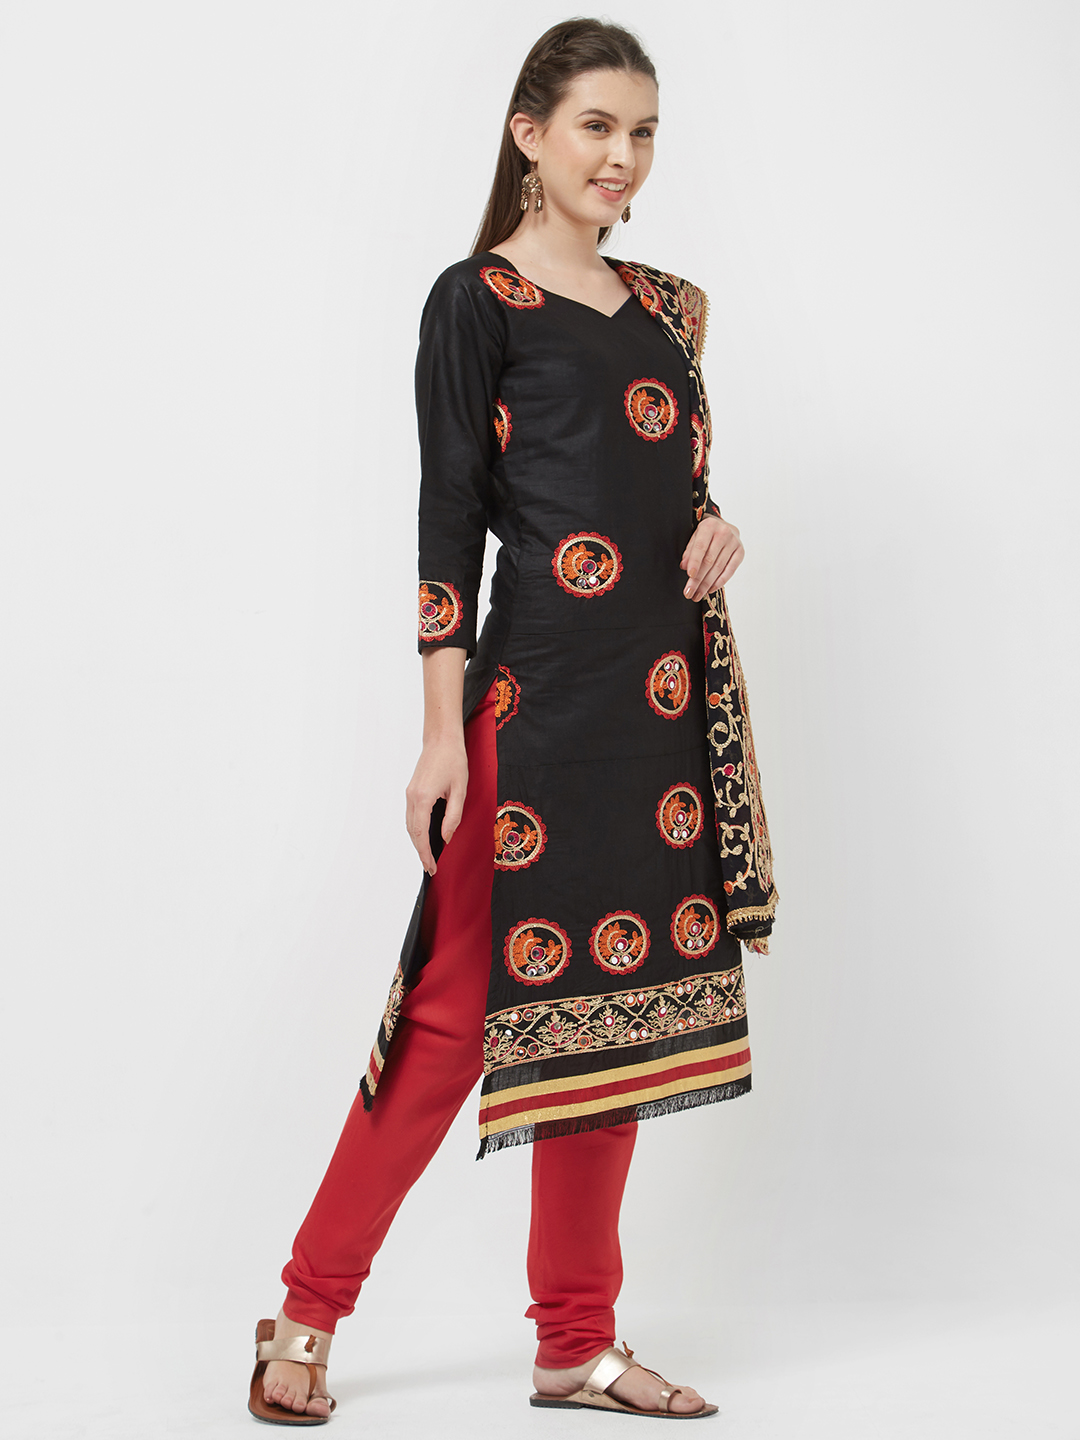 Viva N Diva Yuvika Black Embroidered Cotton Salwar Kmaeez Dress Material